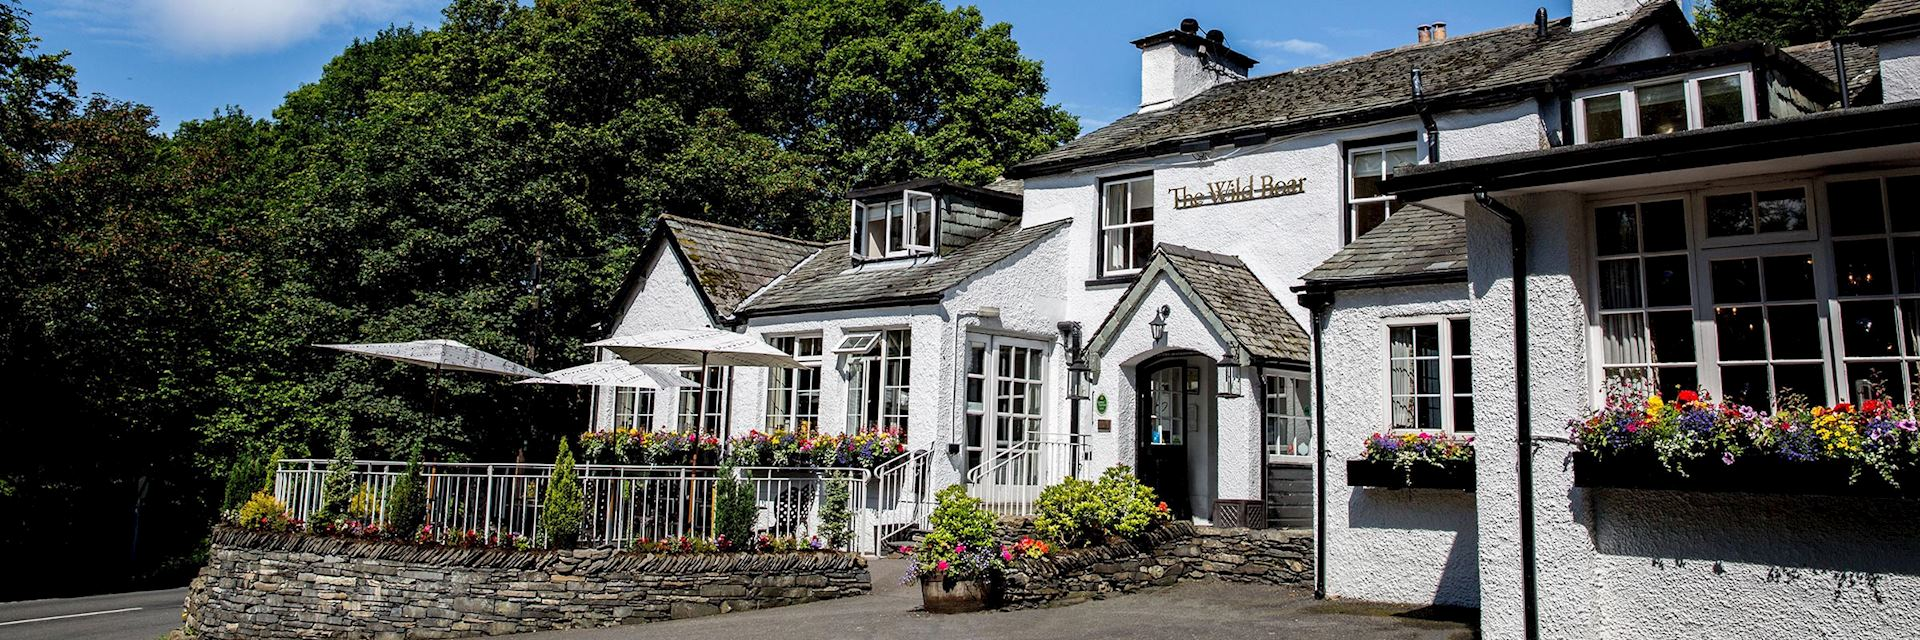 The Wild Boar, The Lake District